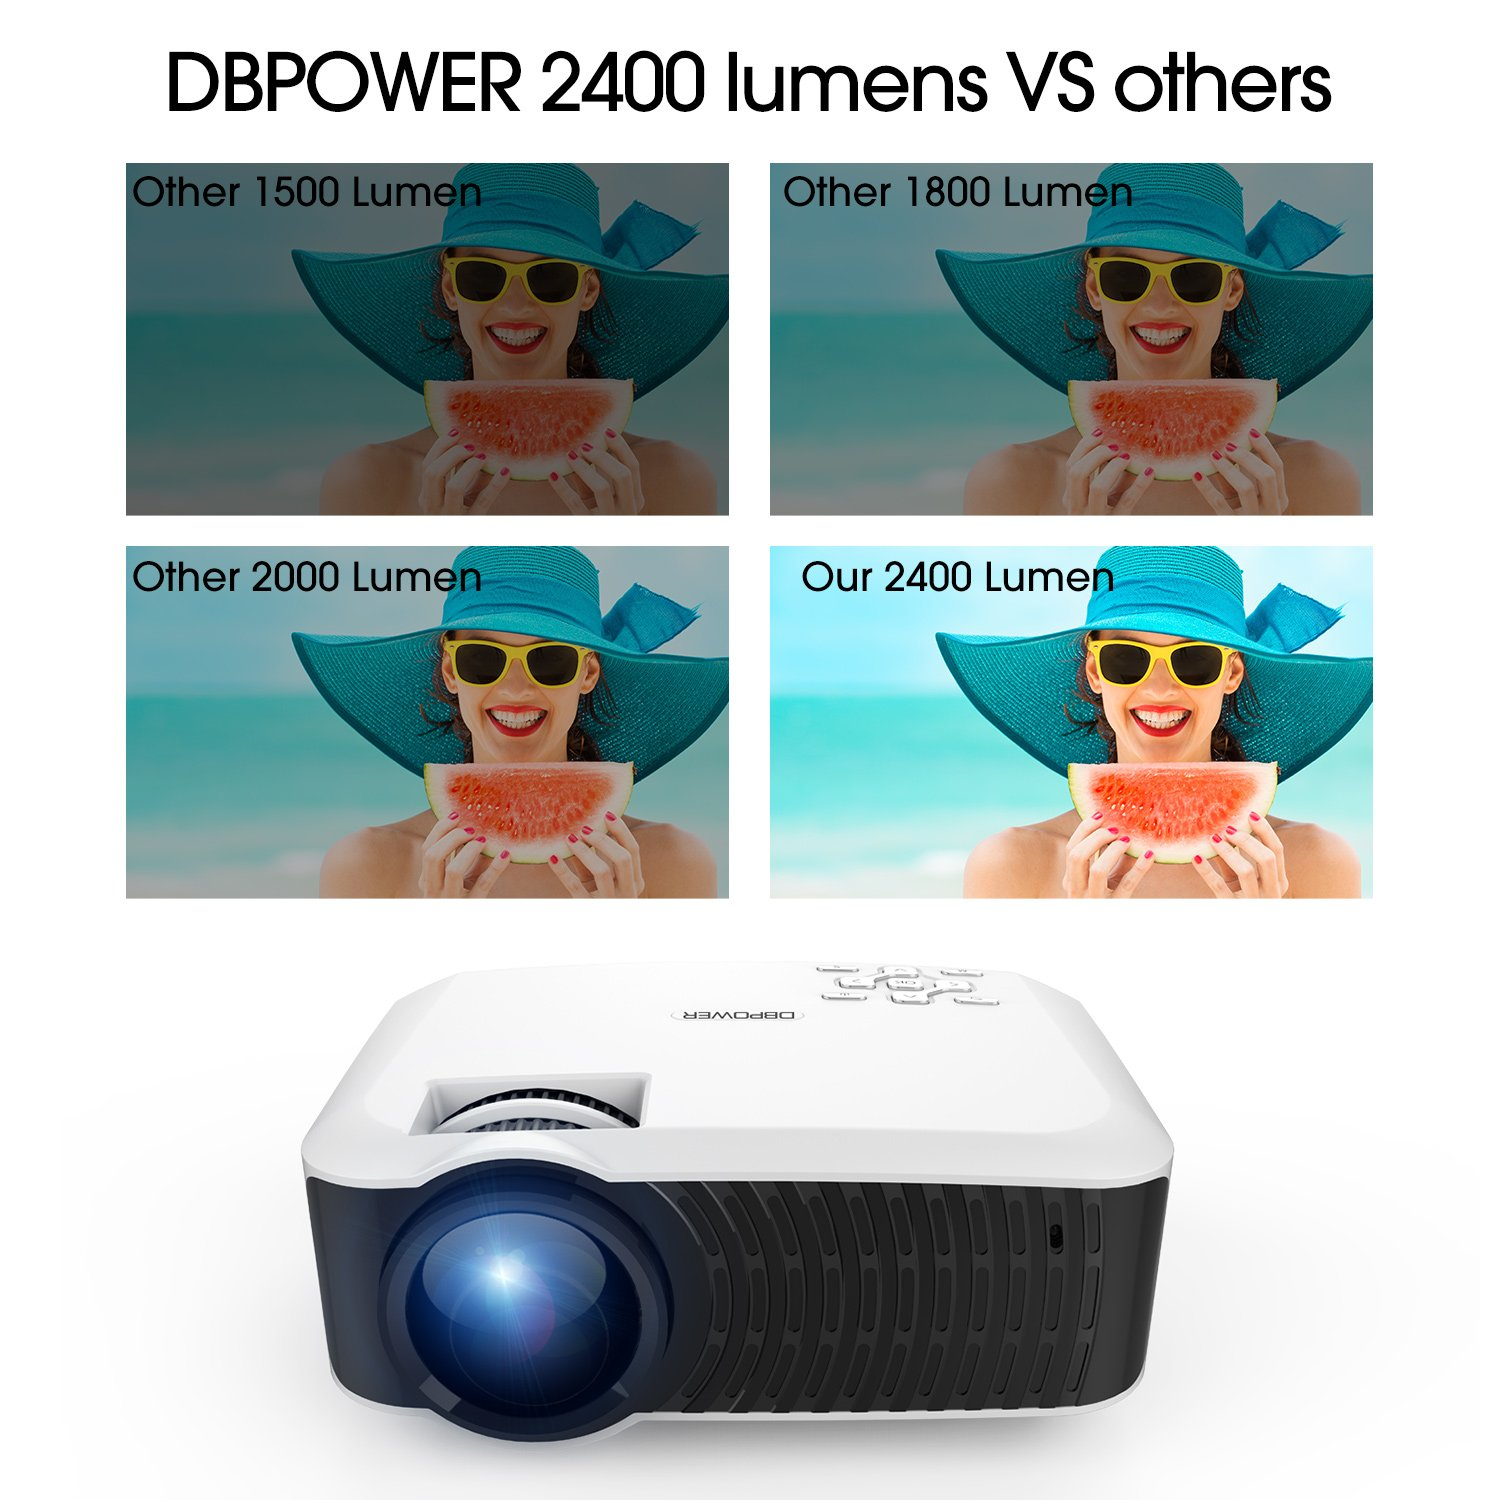 DBPOWER Projector, Upgraded T22 70% Brighter LCD Video Projector ...